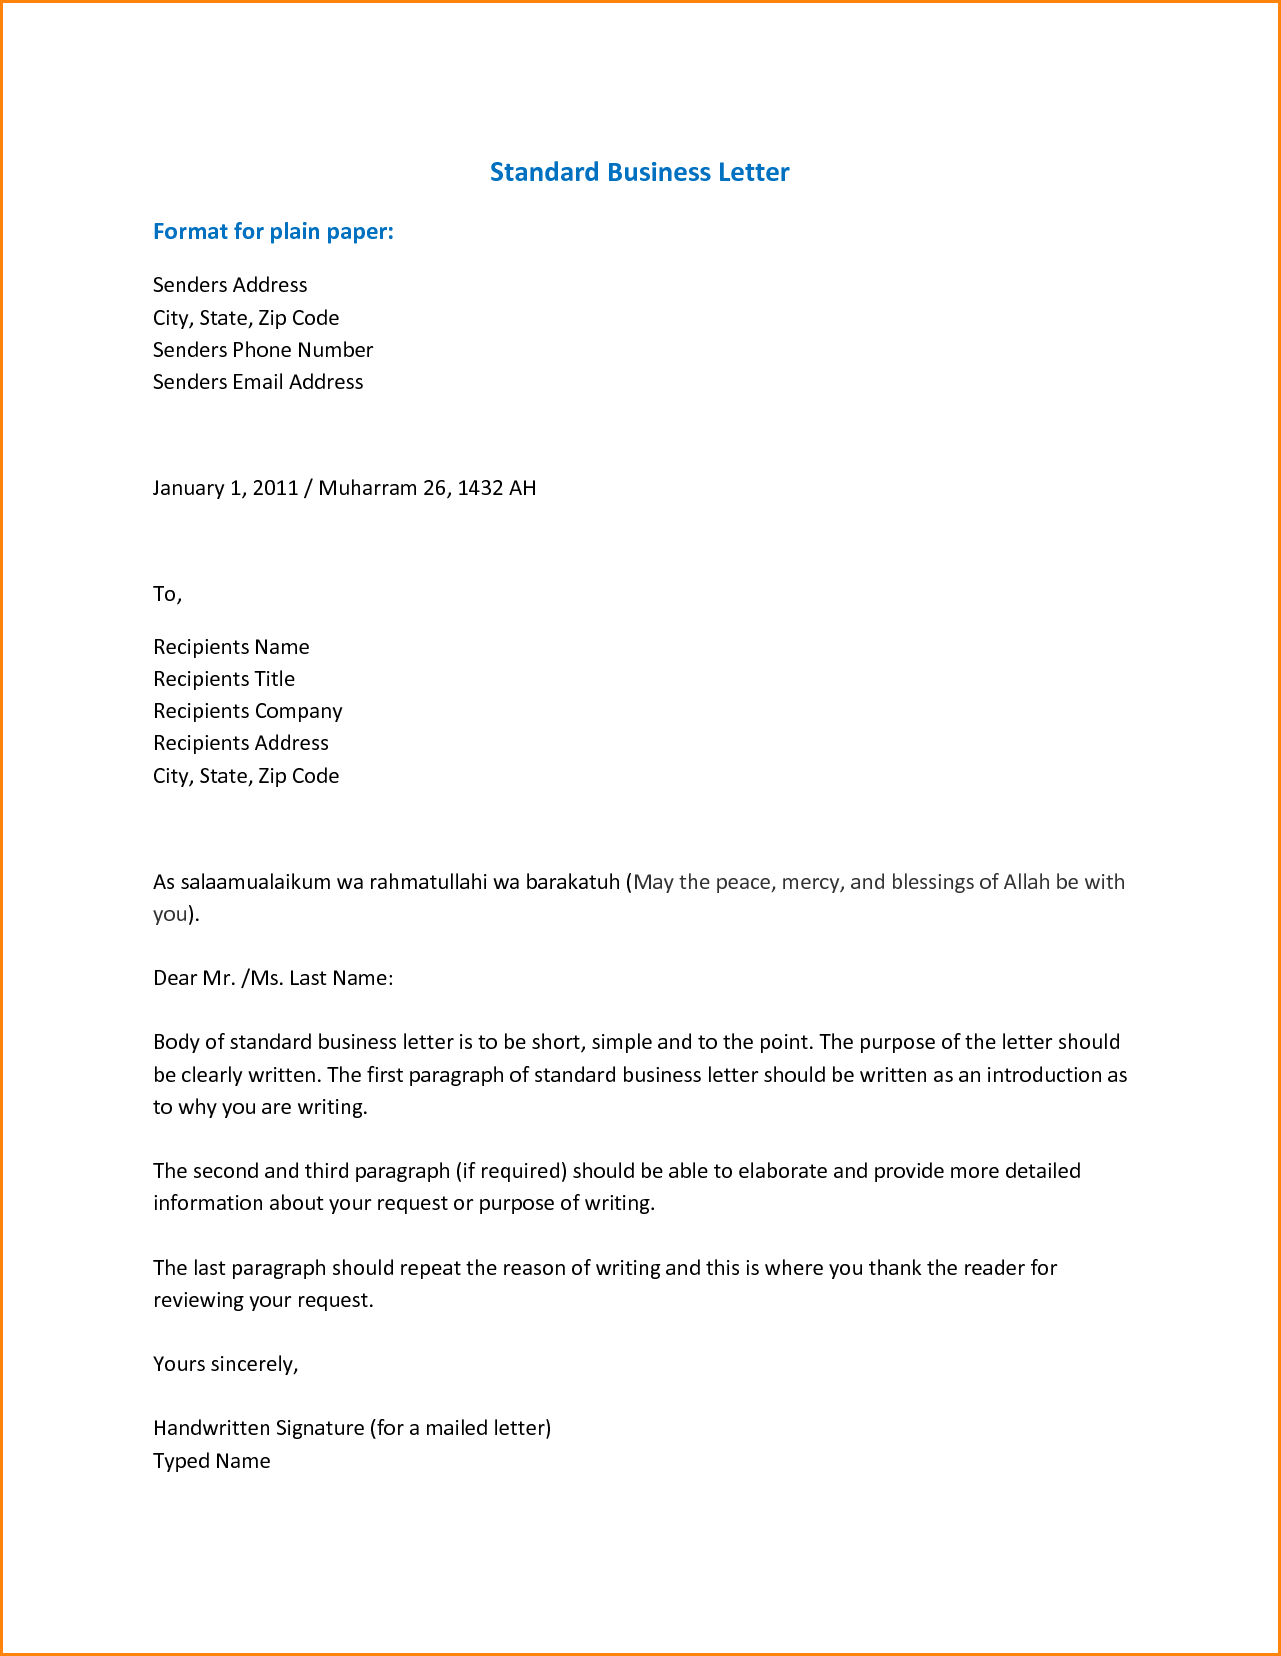 Email Business Letter Format Image Collections Via Mail